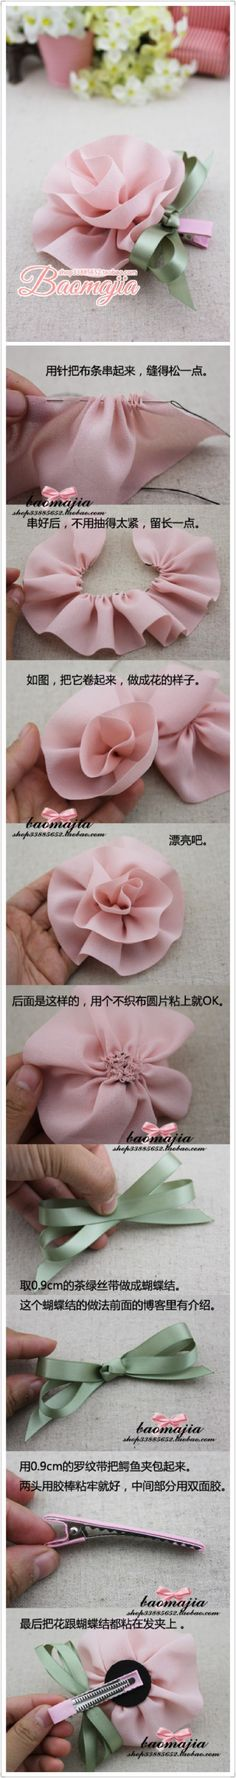 pretty fabric flowers to make